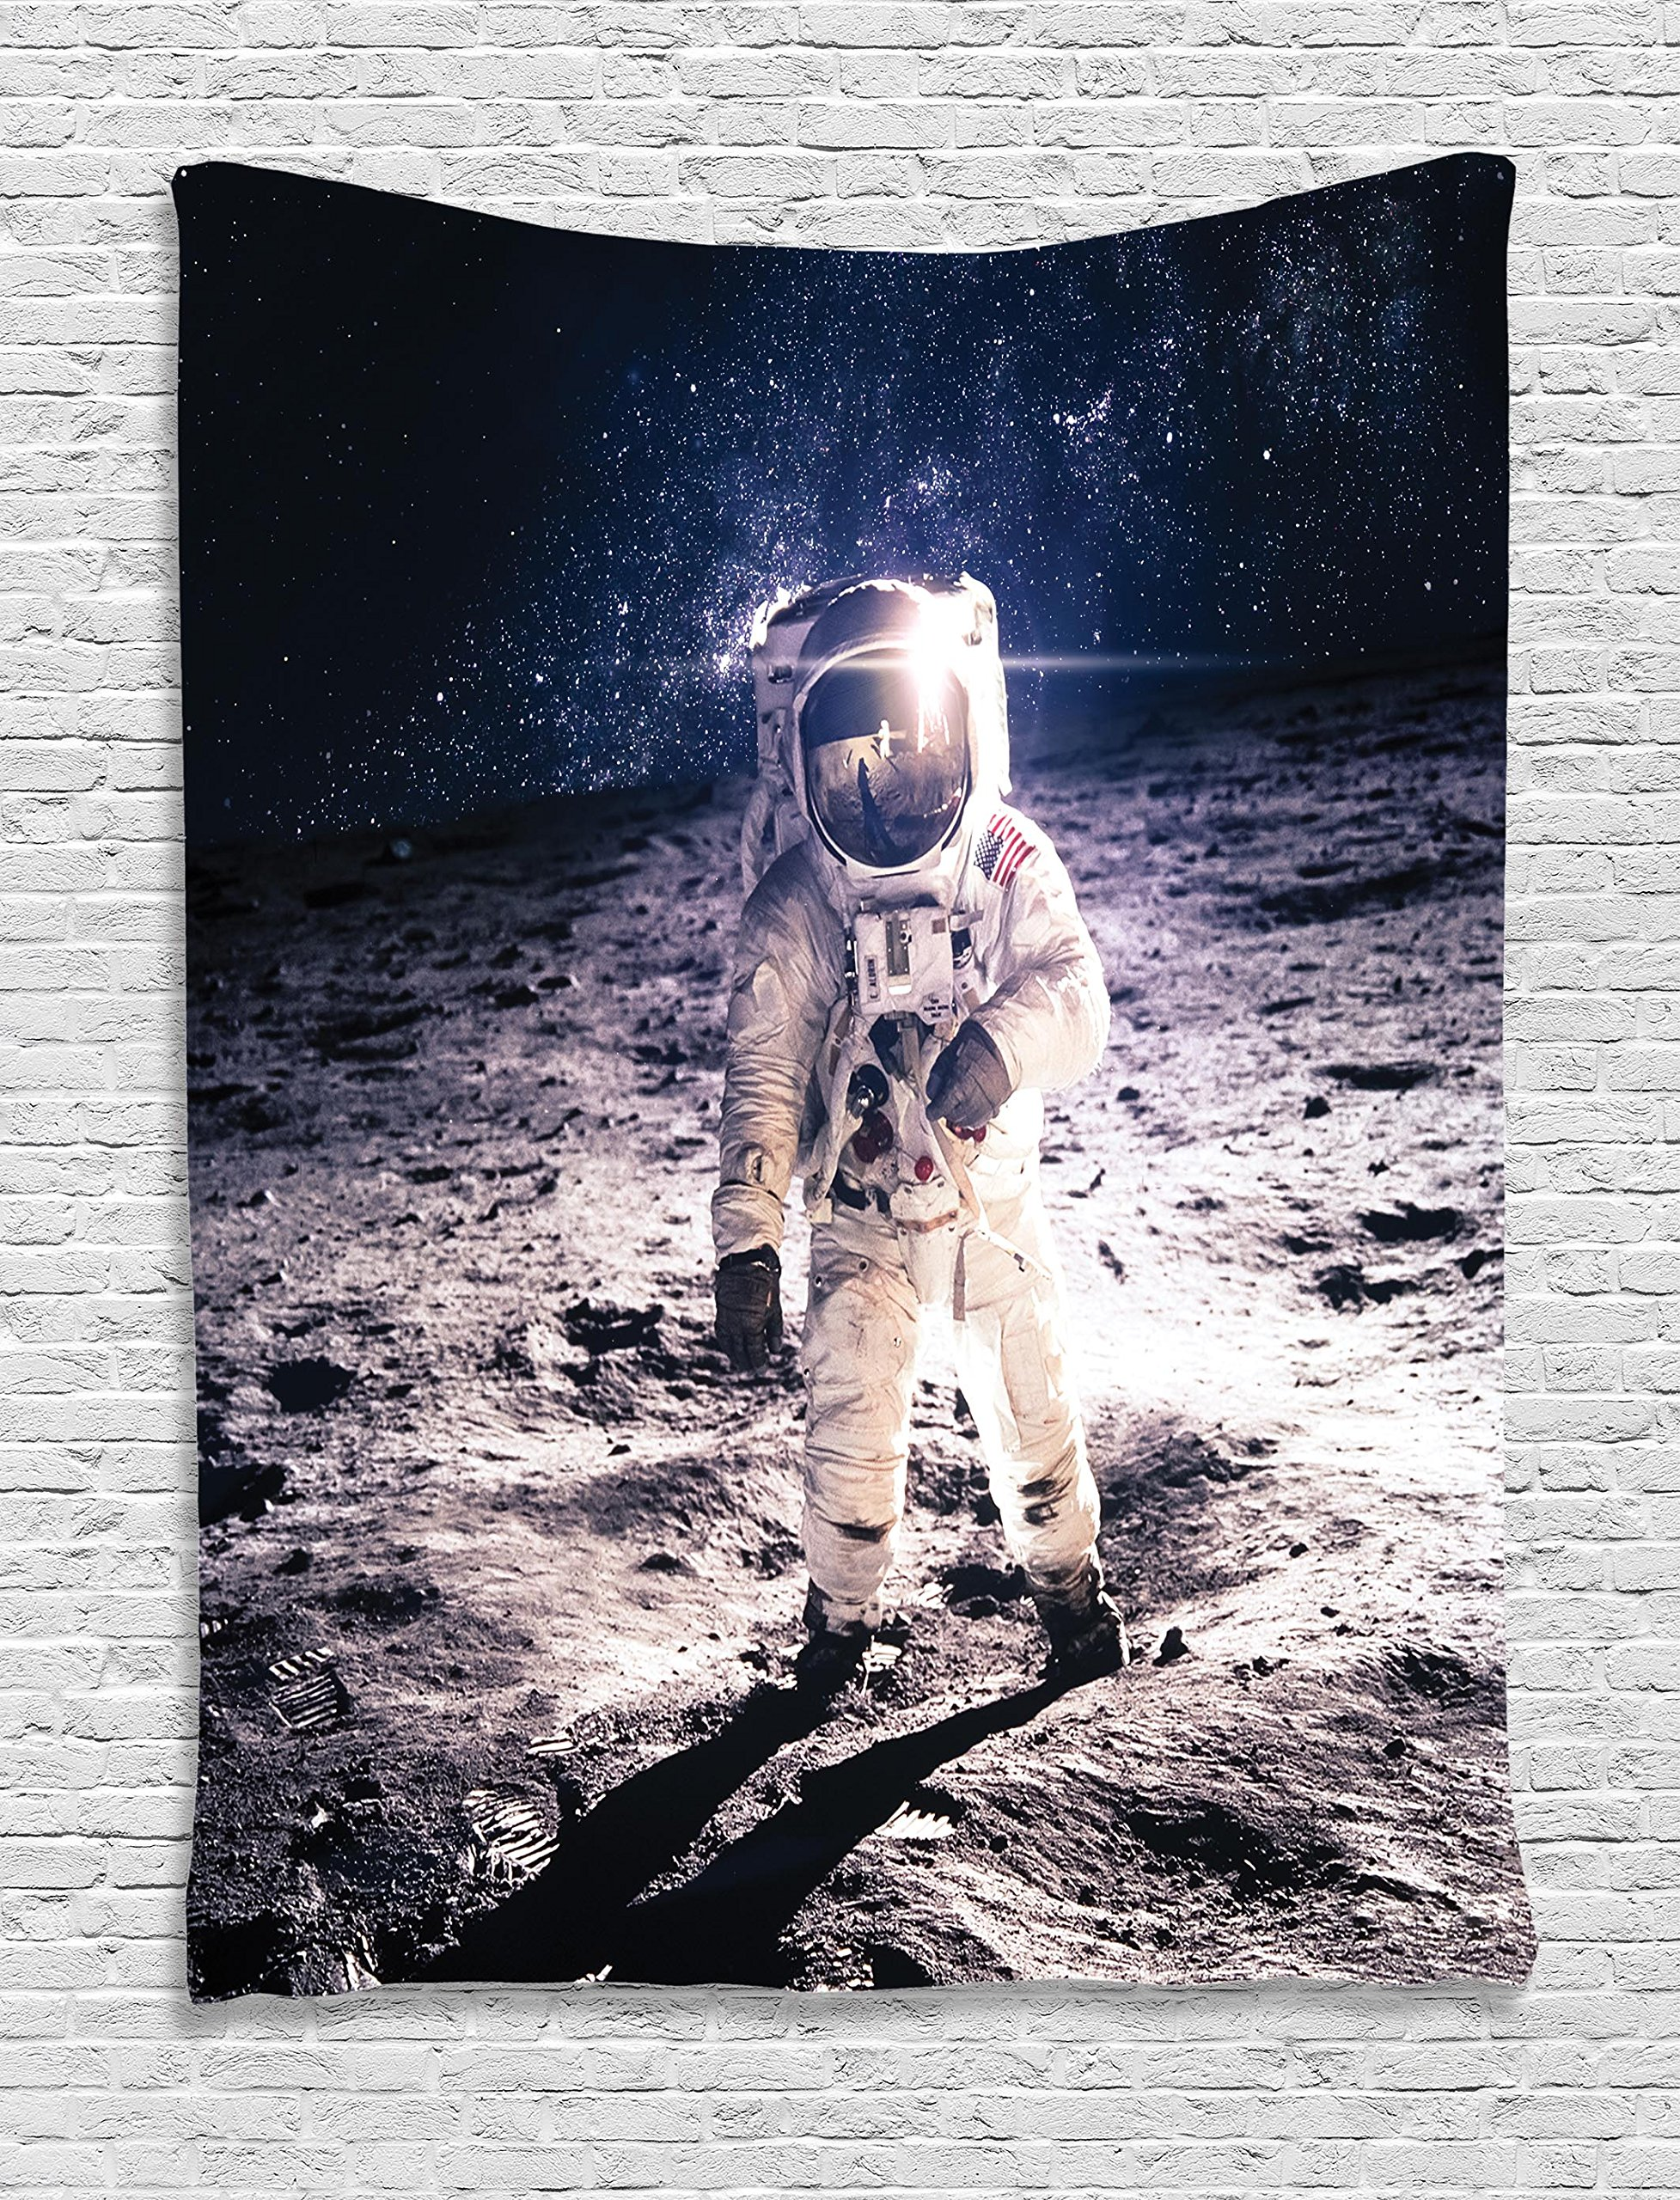 Ambesonne Outer Space Decor Tapestry, Moon Spaceman on Surface of Orbit Background Cosmos Galaxy Solar Photo, Wall Hanging for Bedroom Living Room Dorm, 60 W x 80 L inches, Brown Blue